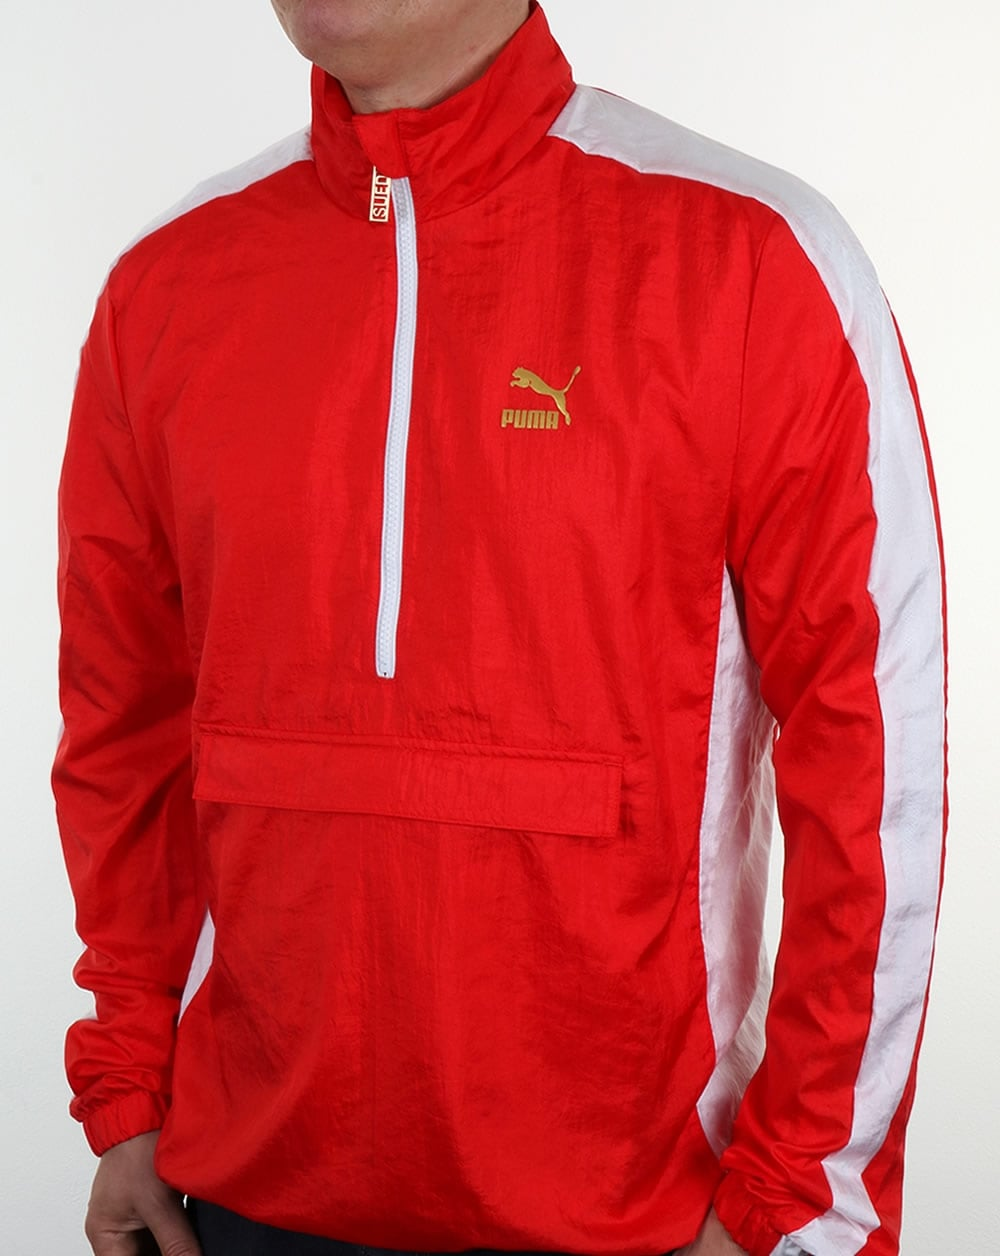 72125a9f835ce0 Puma Puma Savannah Bboy Jacket Red white